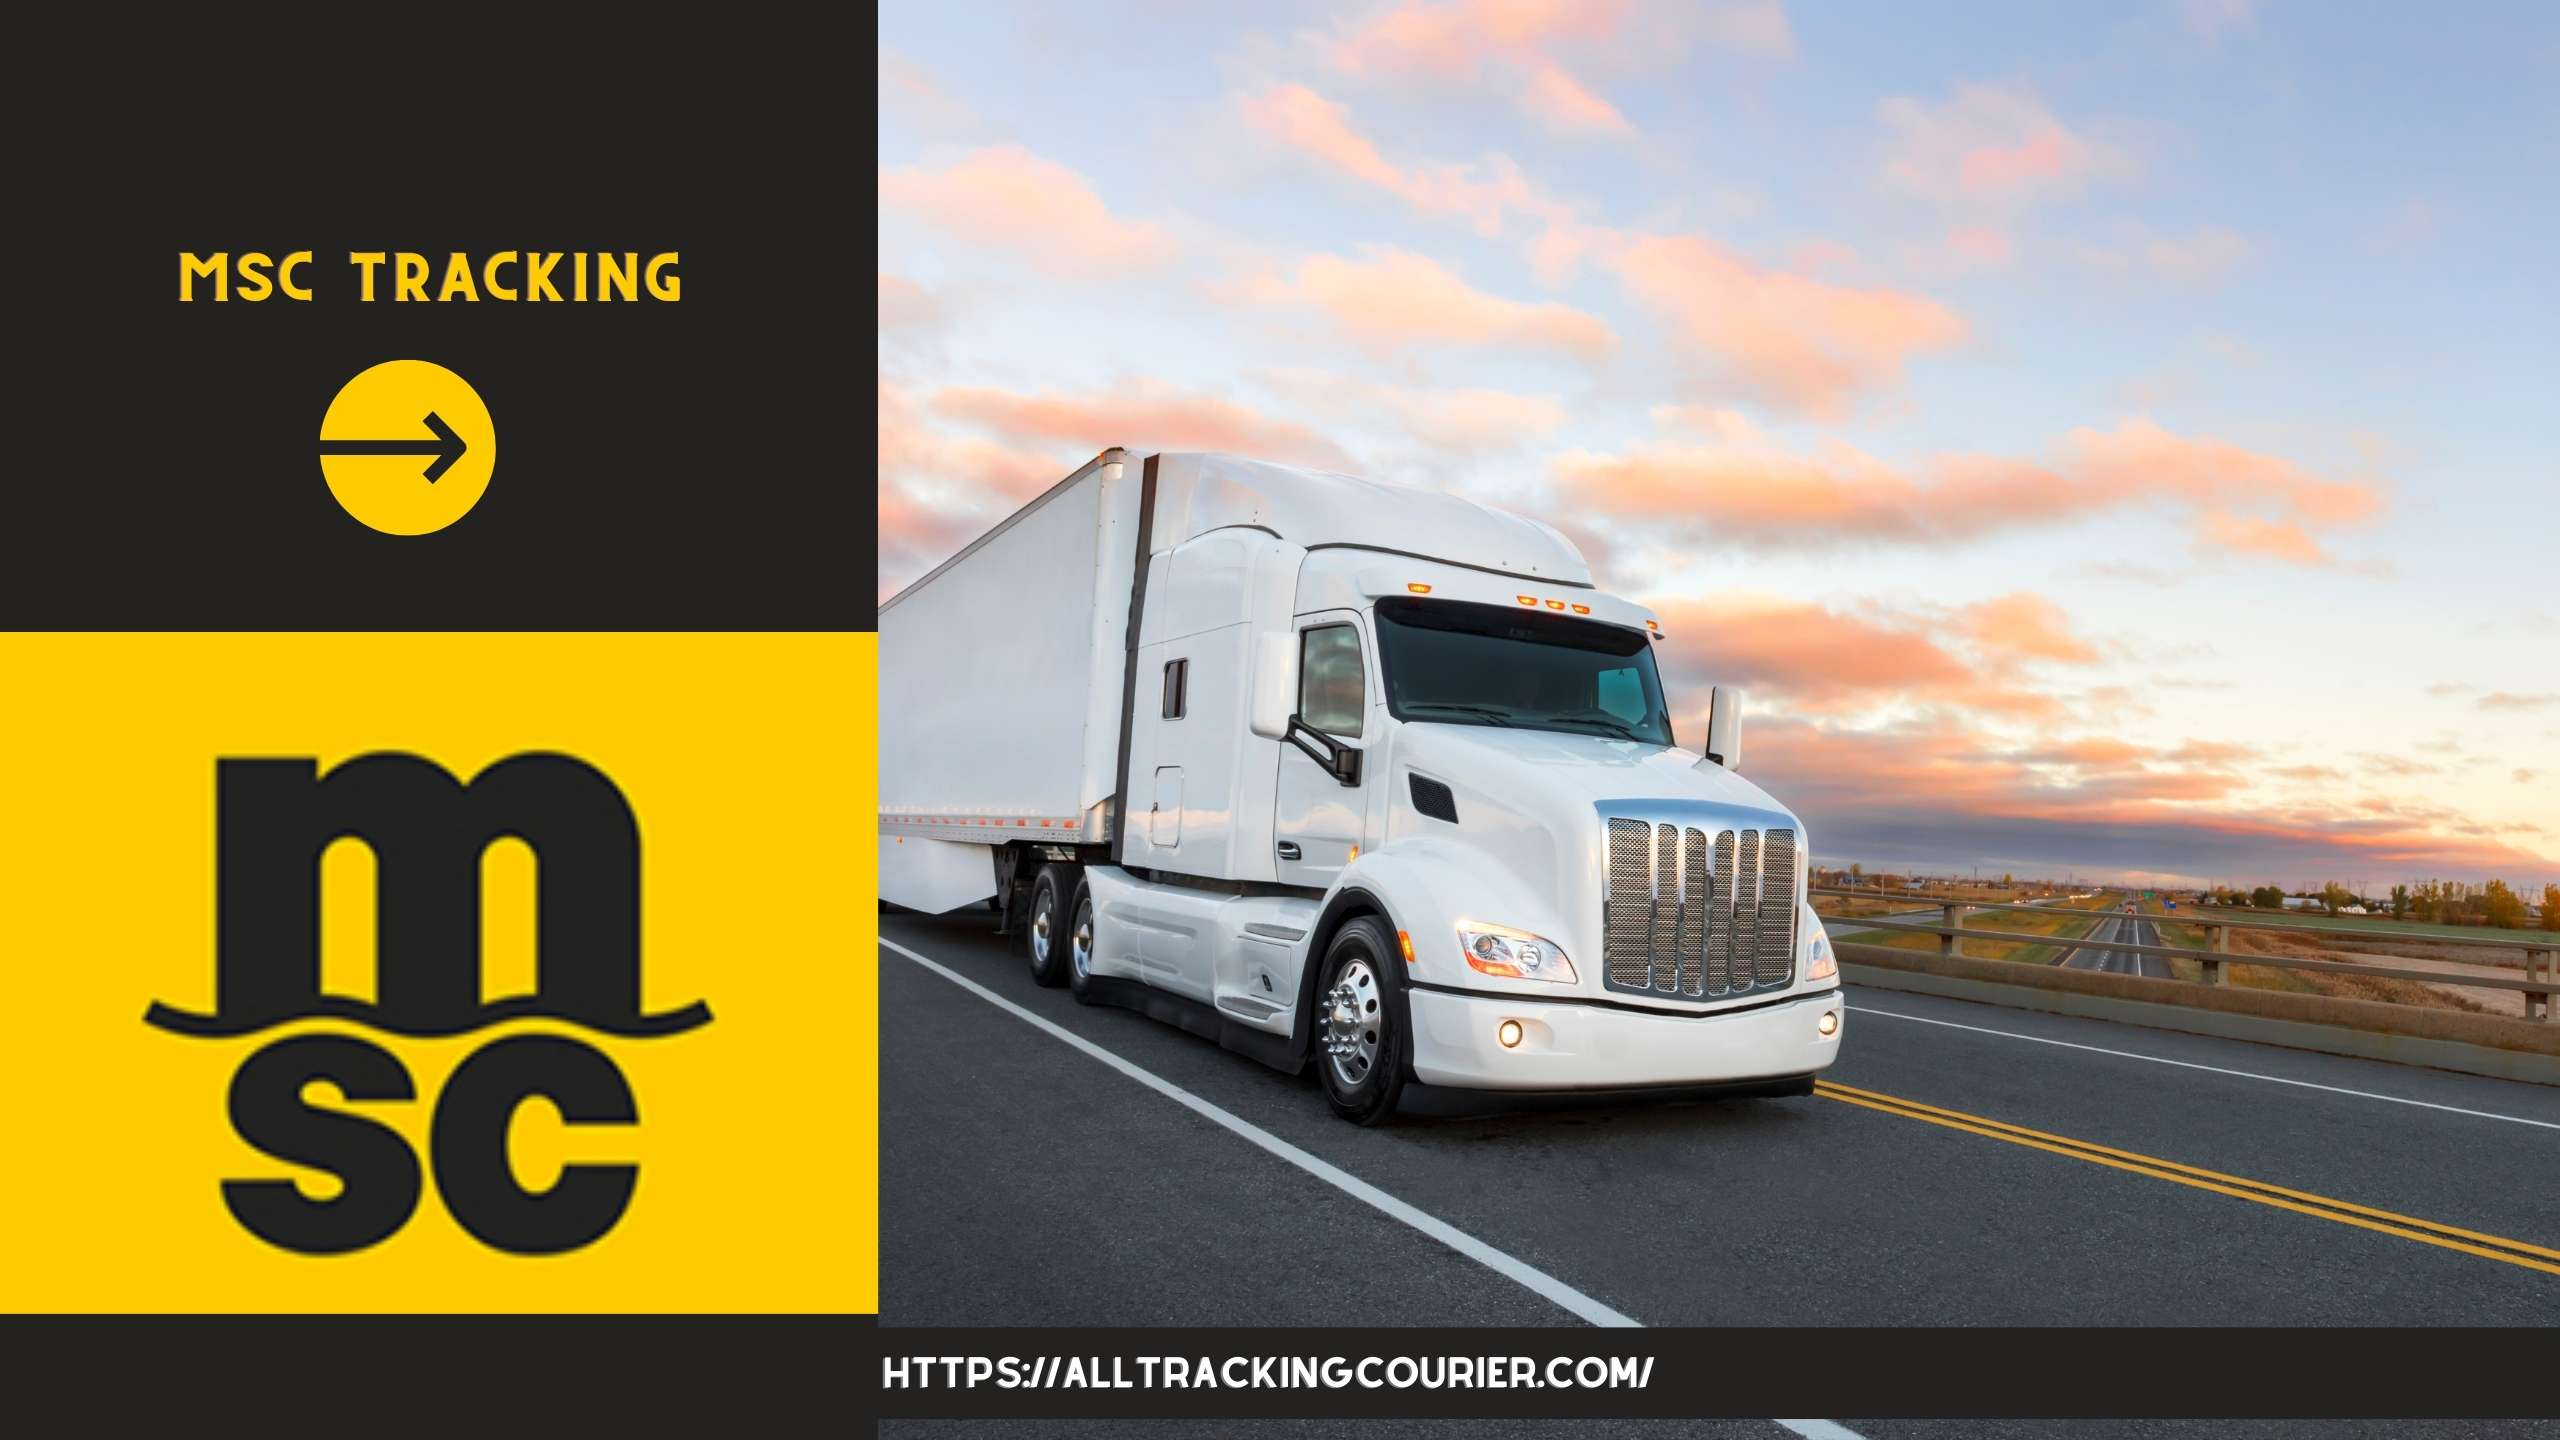 MSc Tracking -  Track Container Live - Alltrackingcourier